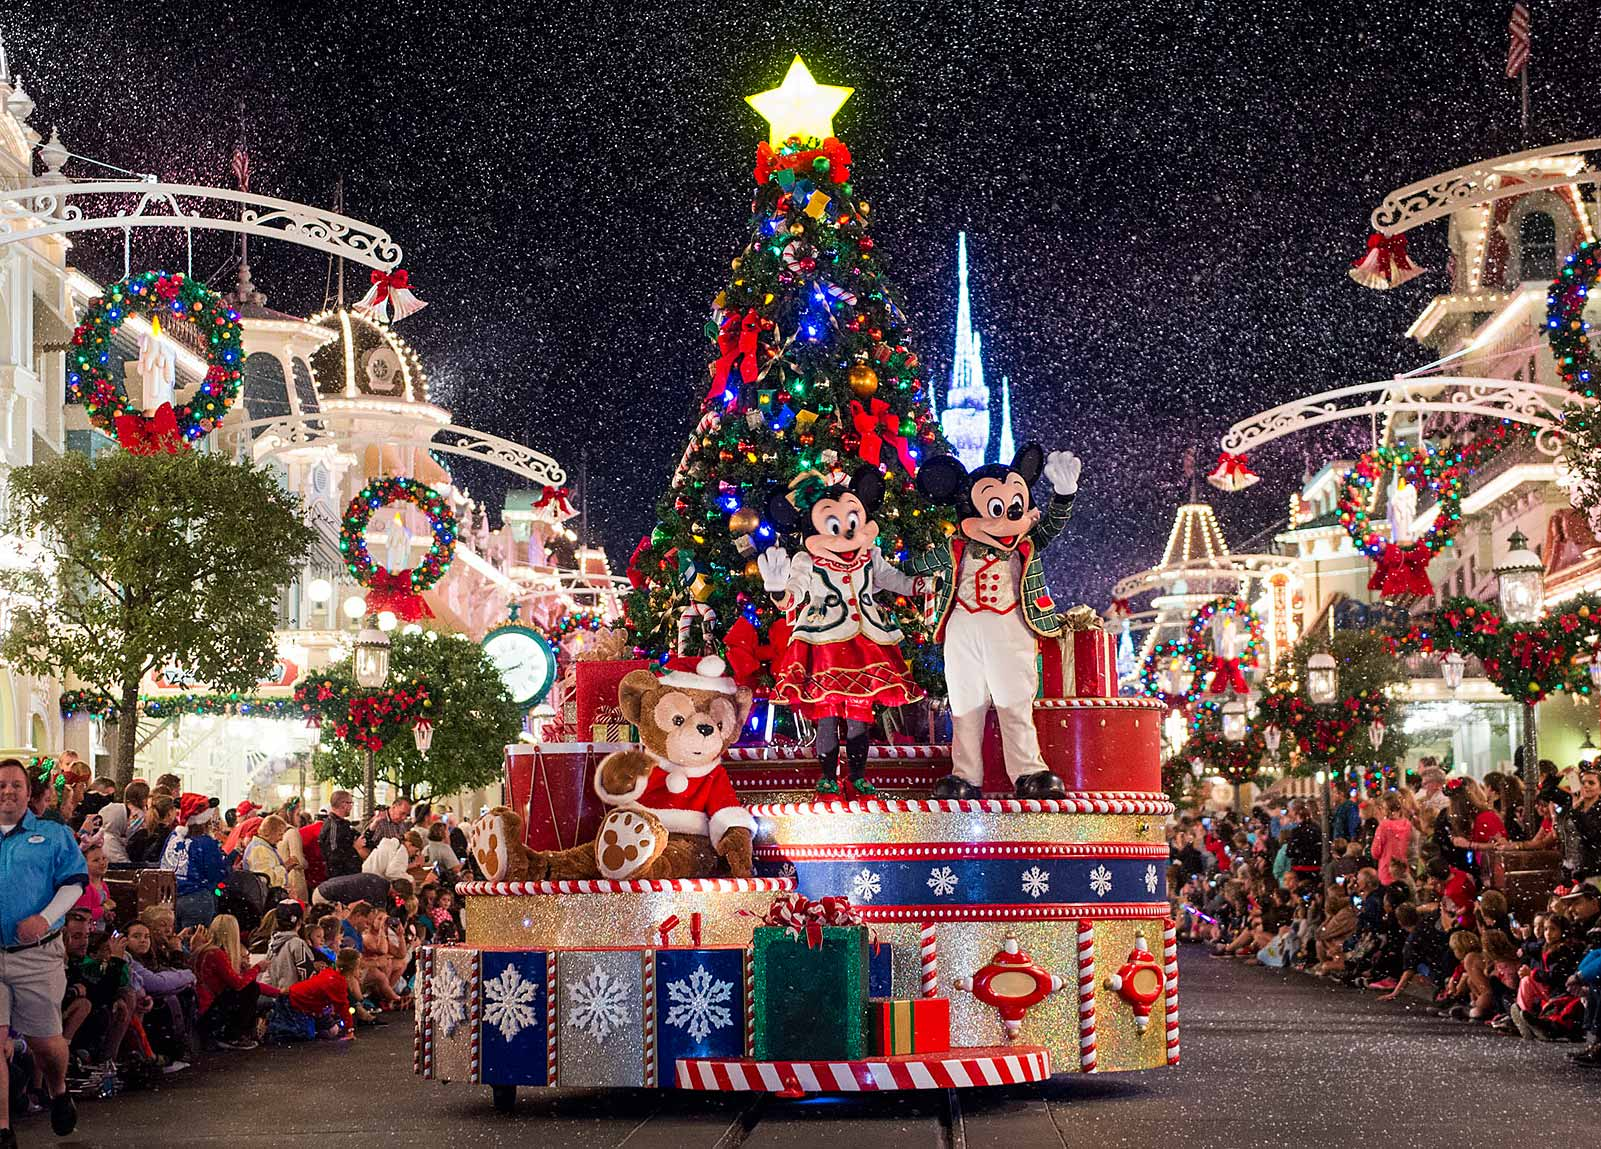 Is Disney World Open On Christmas Day 2020 Christmas at Disney World 2020   Walt Disney World Christmas Day